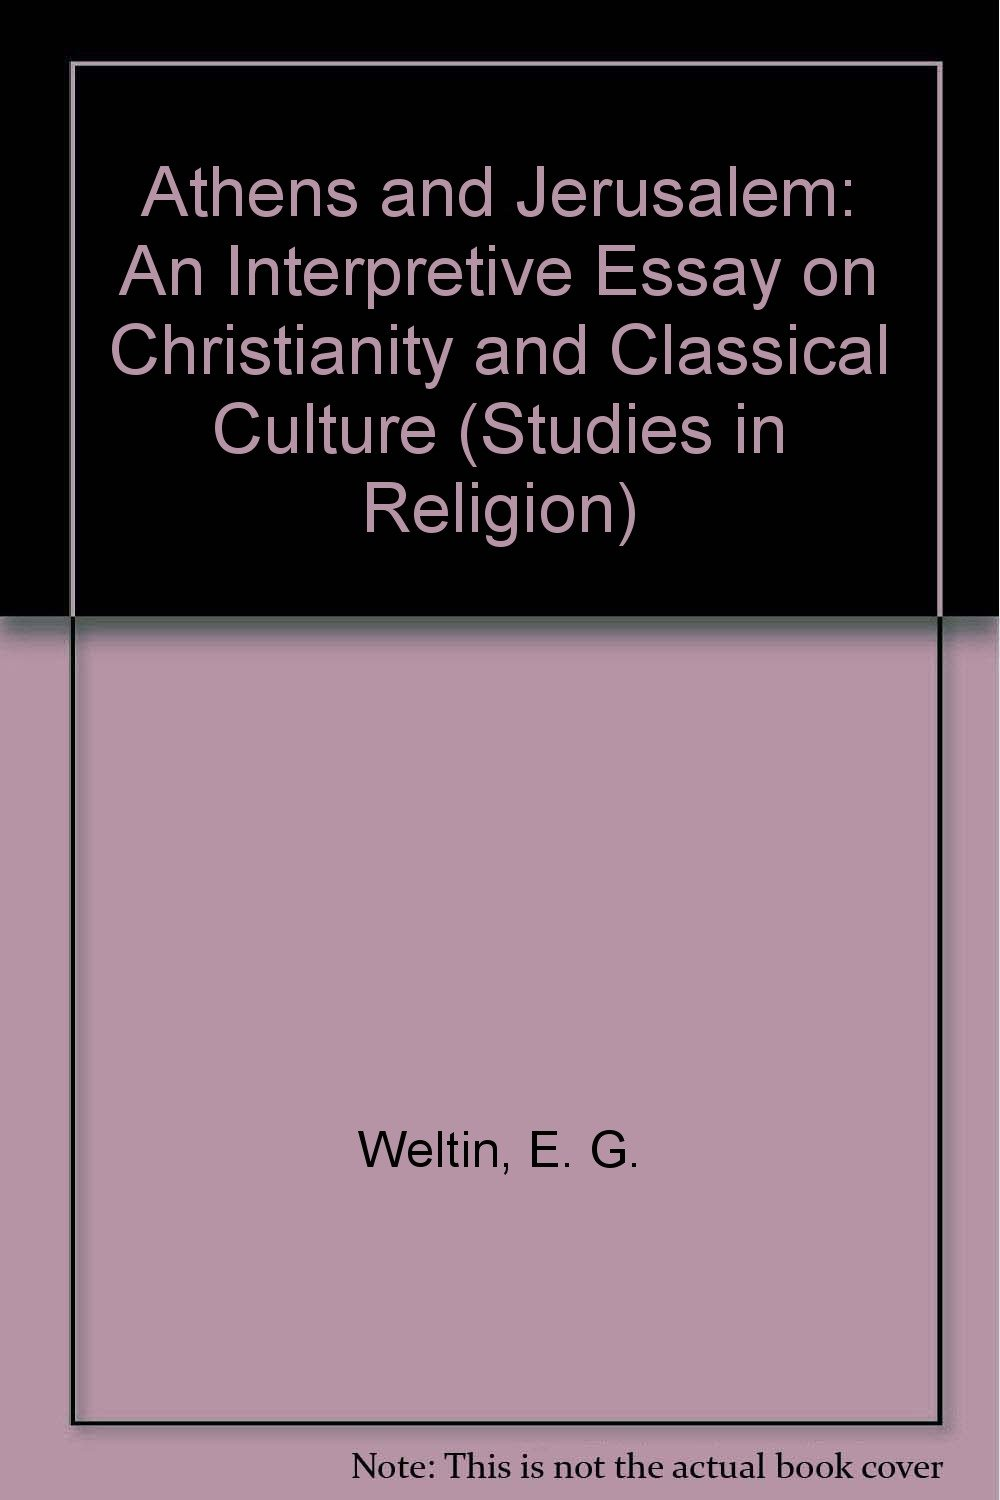 Athens And Jerusalem An Interpretive Essay On Christianity And  Athens And Jerusalem An Interpretive Essay On Christianity And Classical  Culture Studies In Religion E G Weltin  Amazoncom  Books